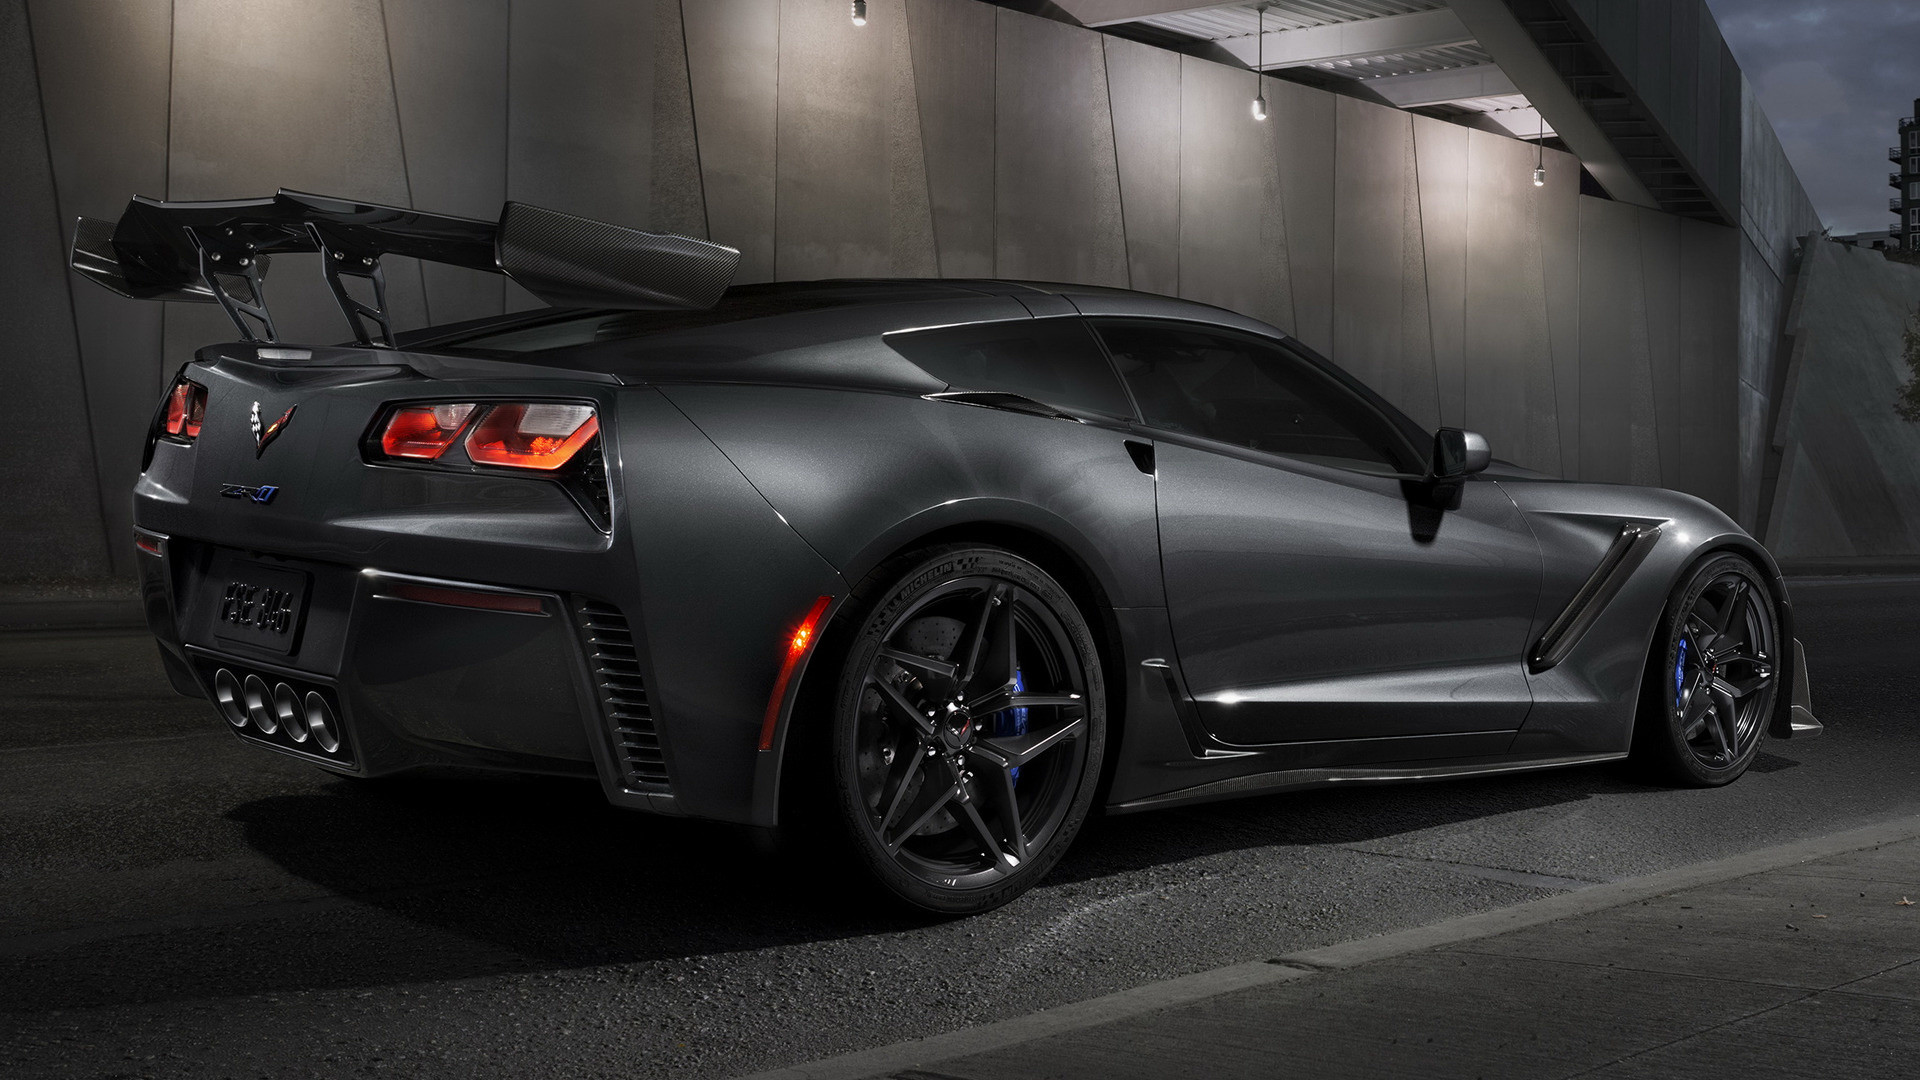 1920x1200 2009 Chevy Corvette ZR1 Wallpaper